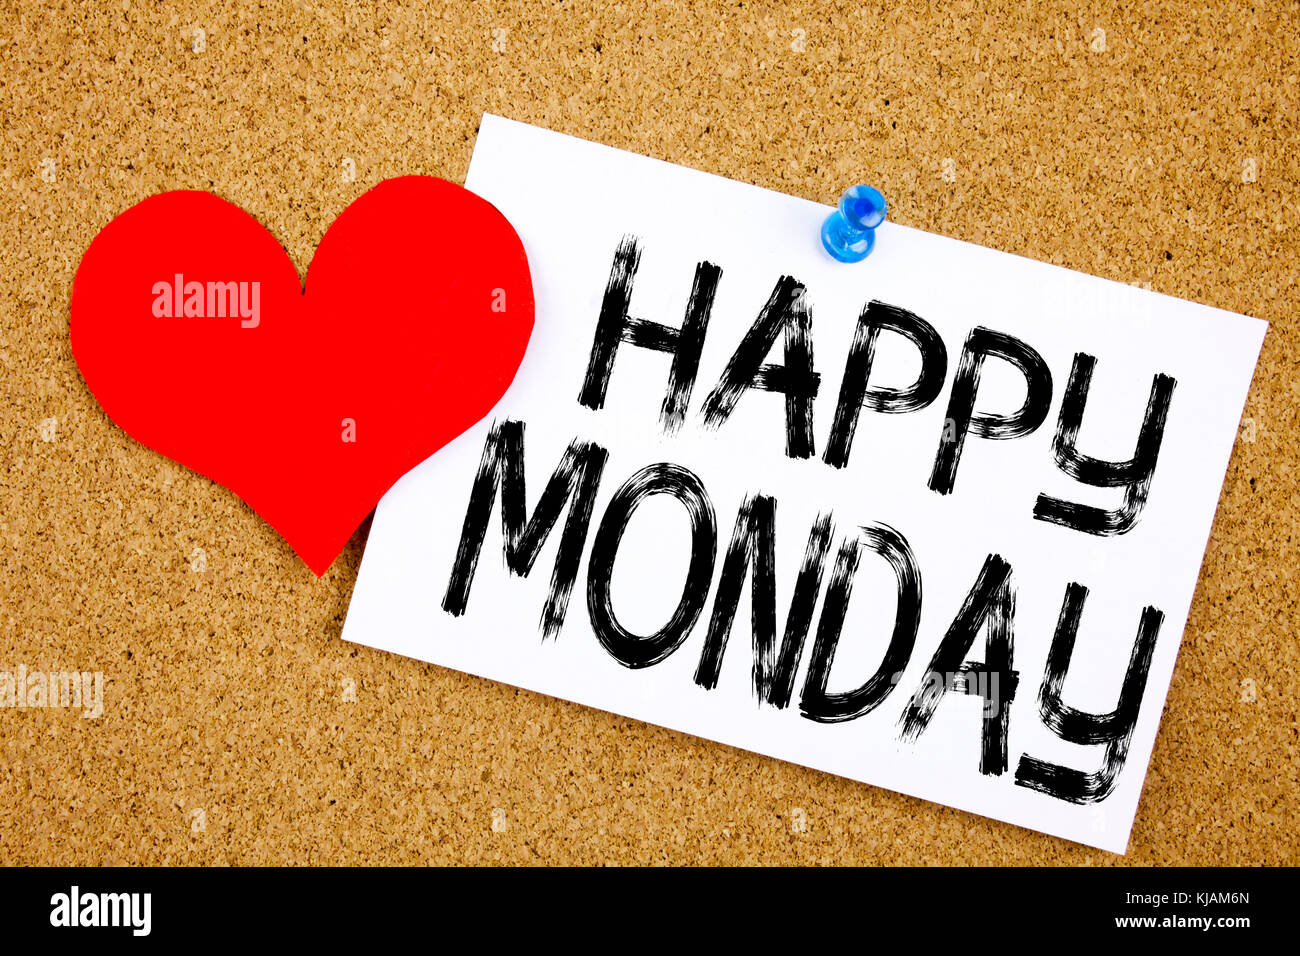 Conceptual hand writing text caption inspiration showing Happy Monday concept for Greeting Announcement and Love - Stock Image